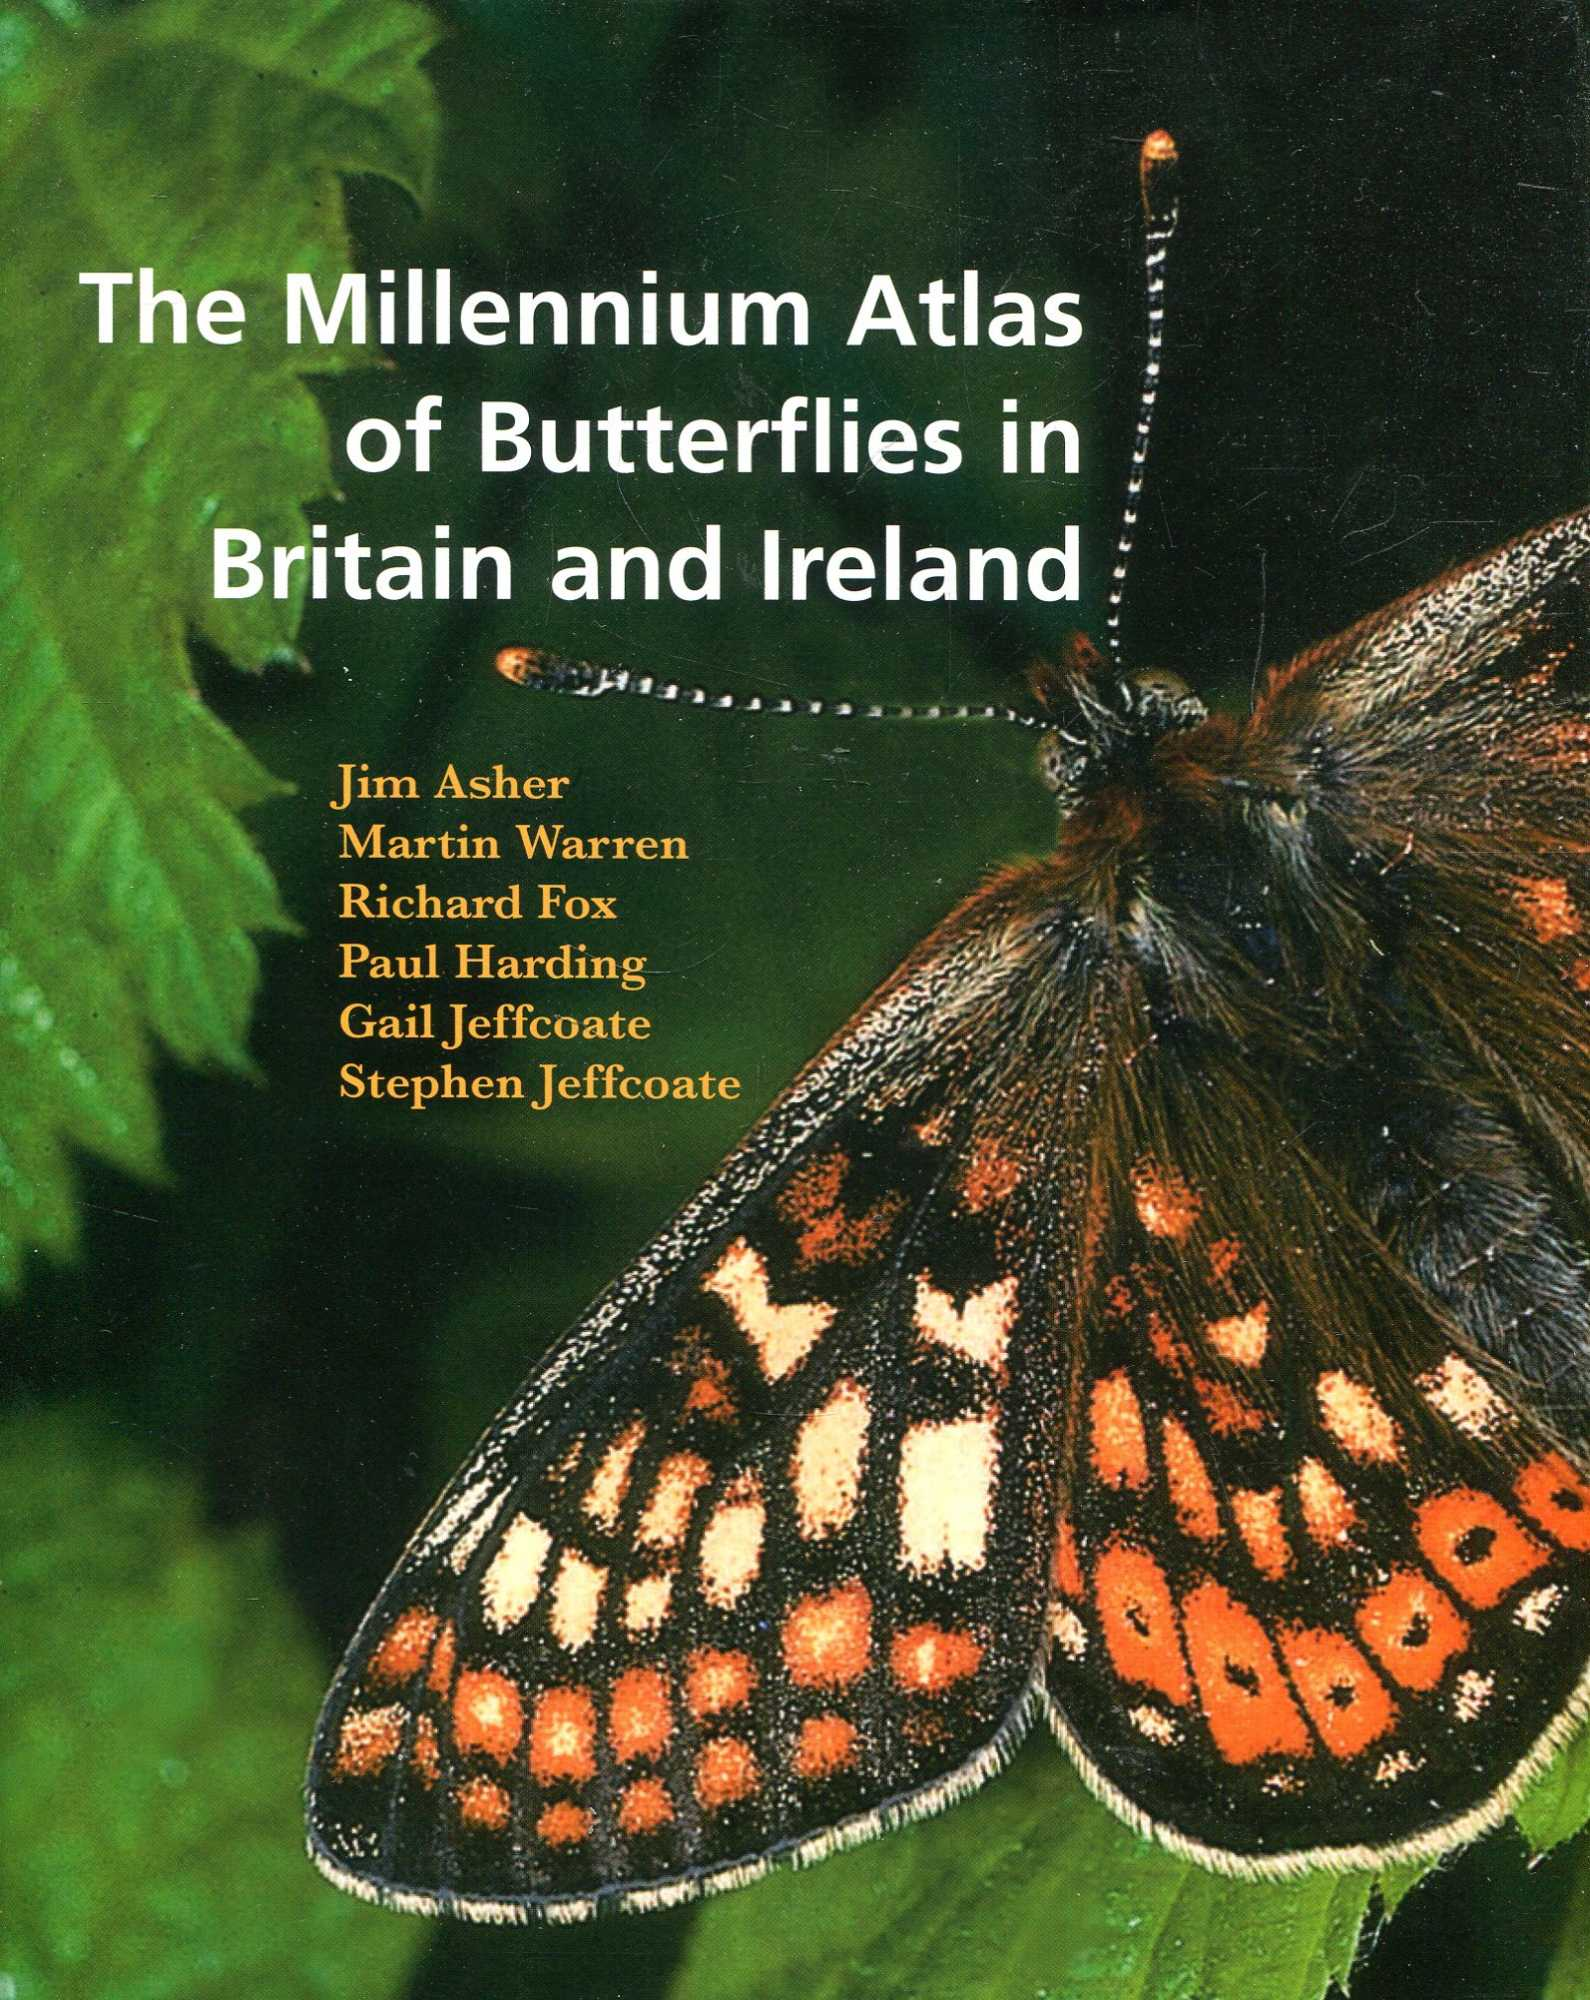 Image for The Millennium Atlas of Butterflies in Britain and Ireland